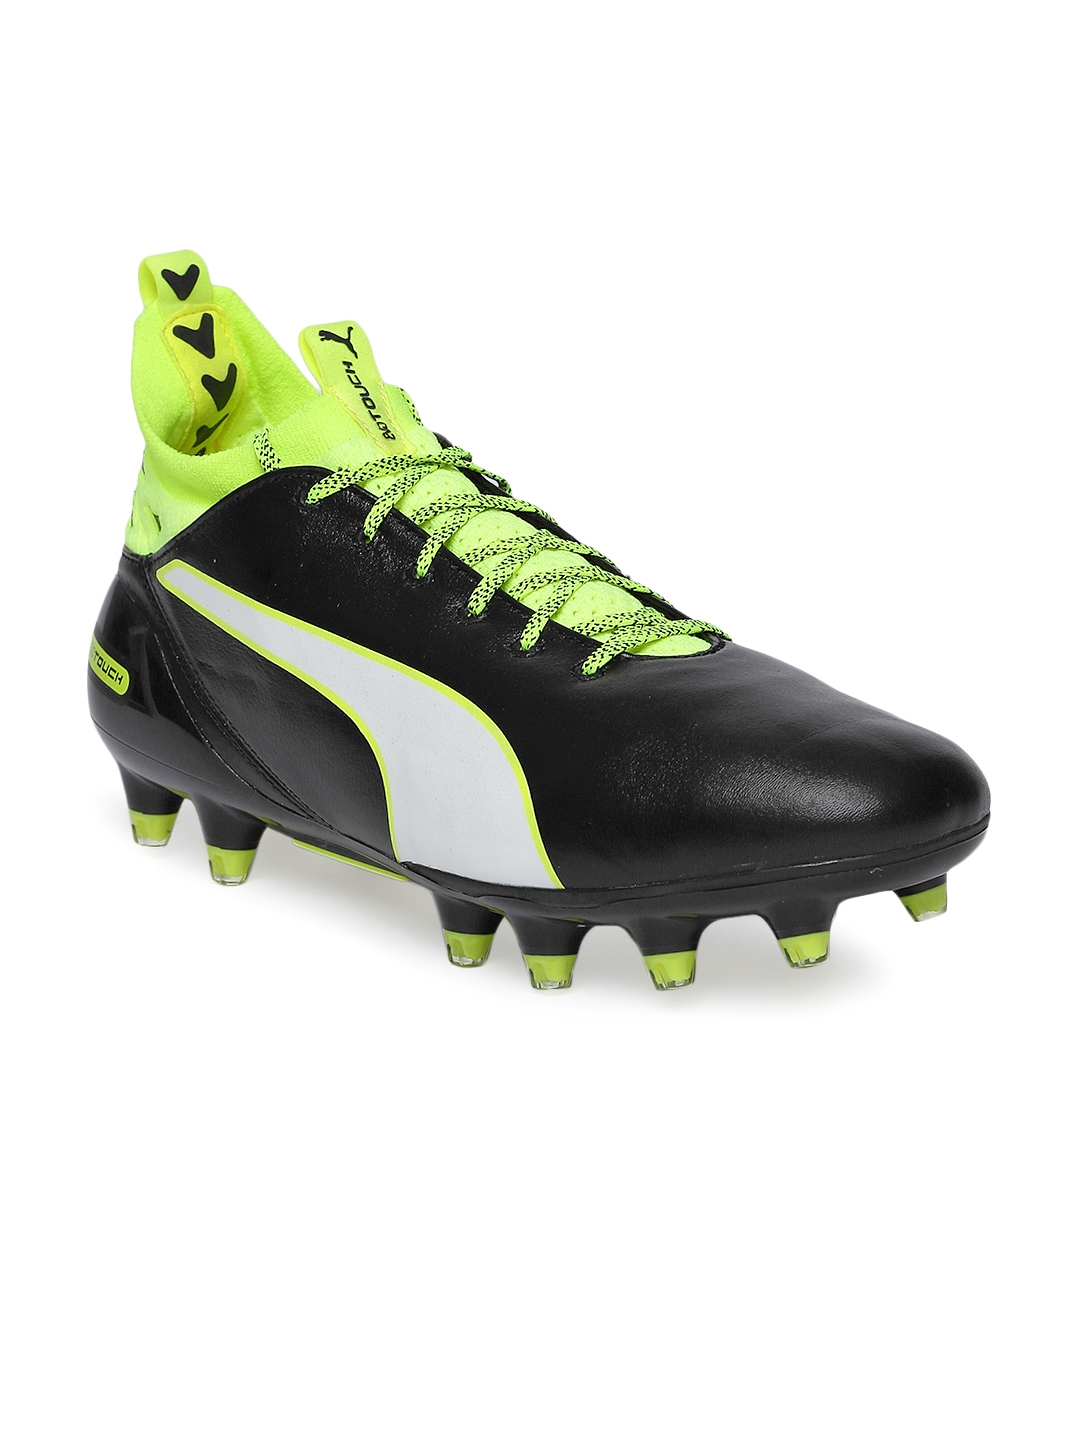 EvoTOUCH PRO Football Shoes